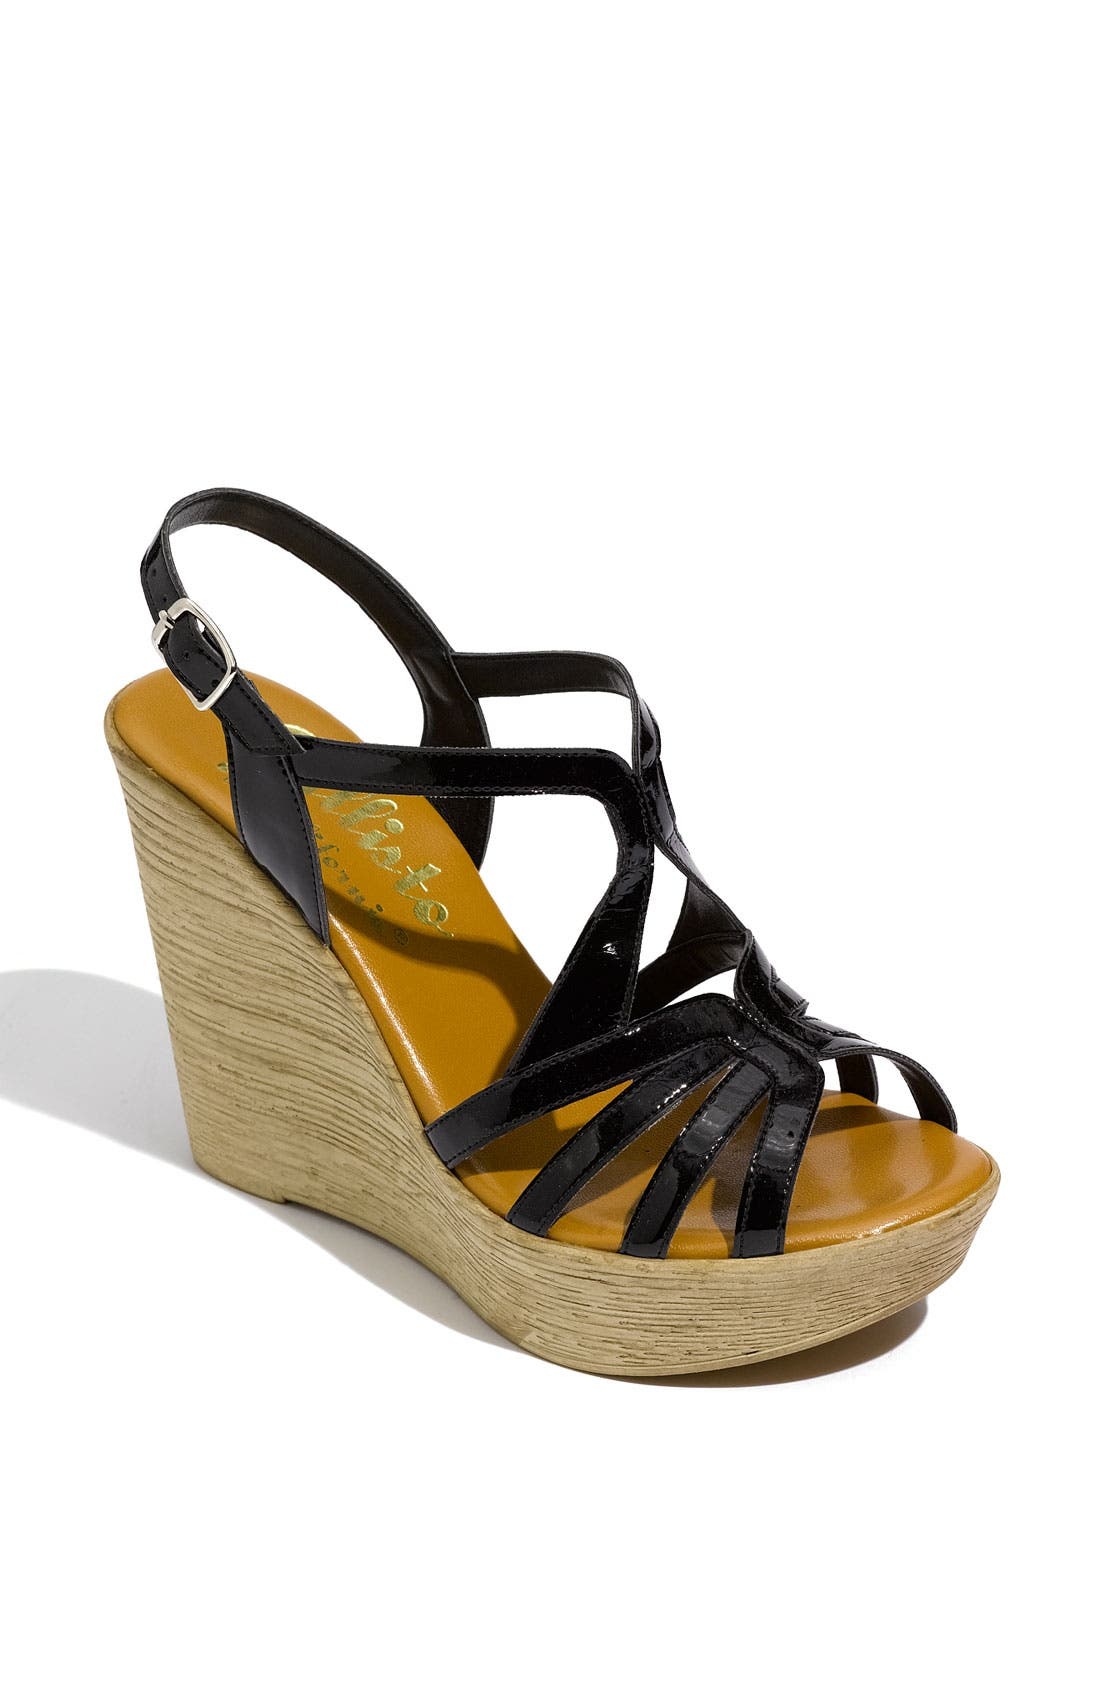 Alternate Image 1 Selected - Callisto 'Tiara' Wedge Sandal